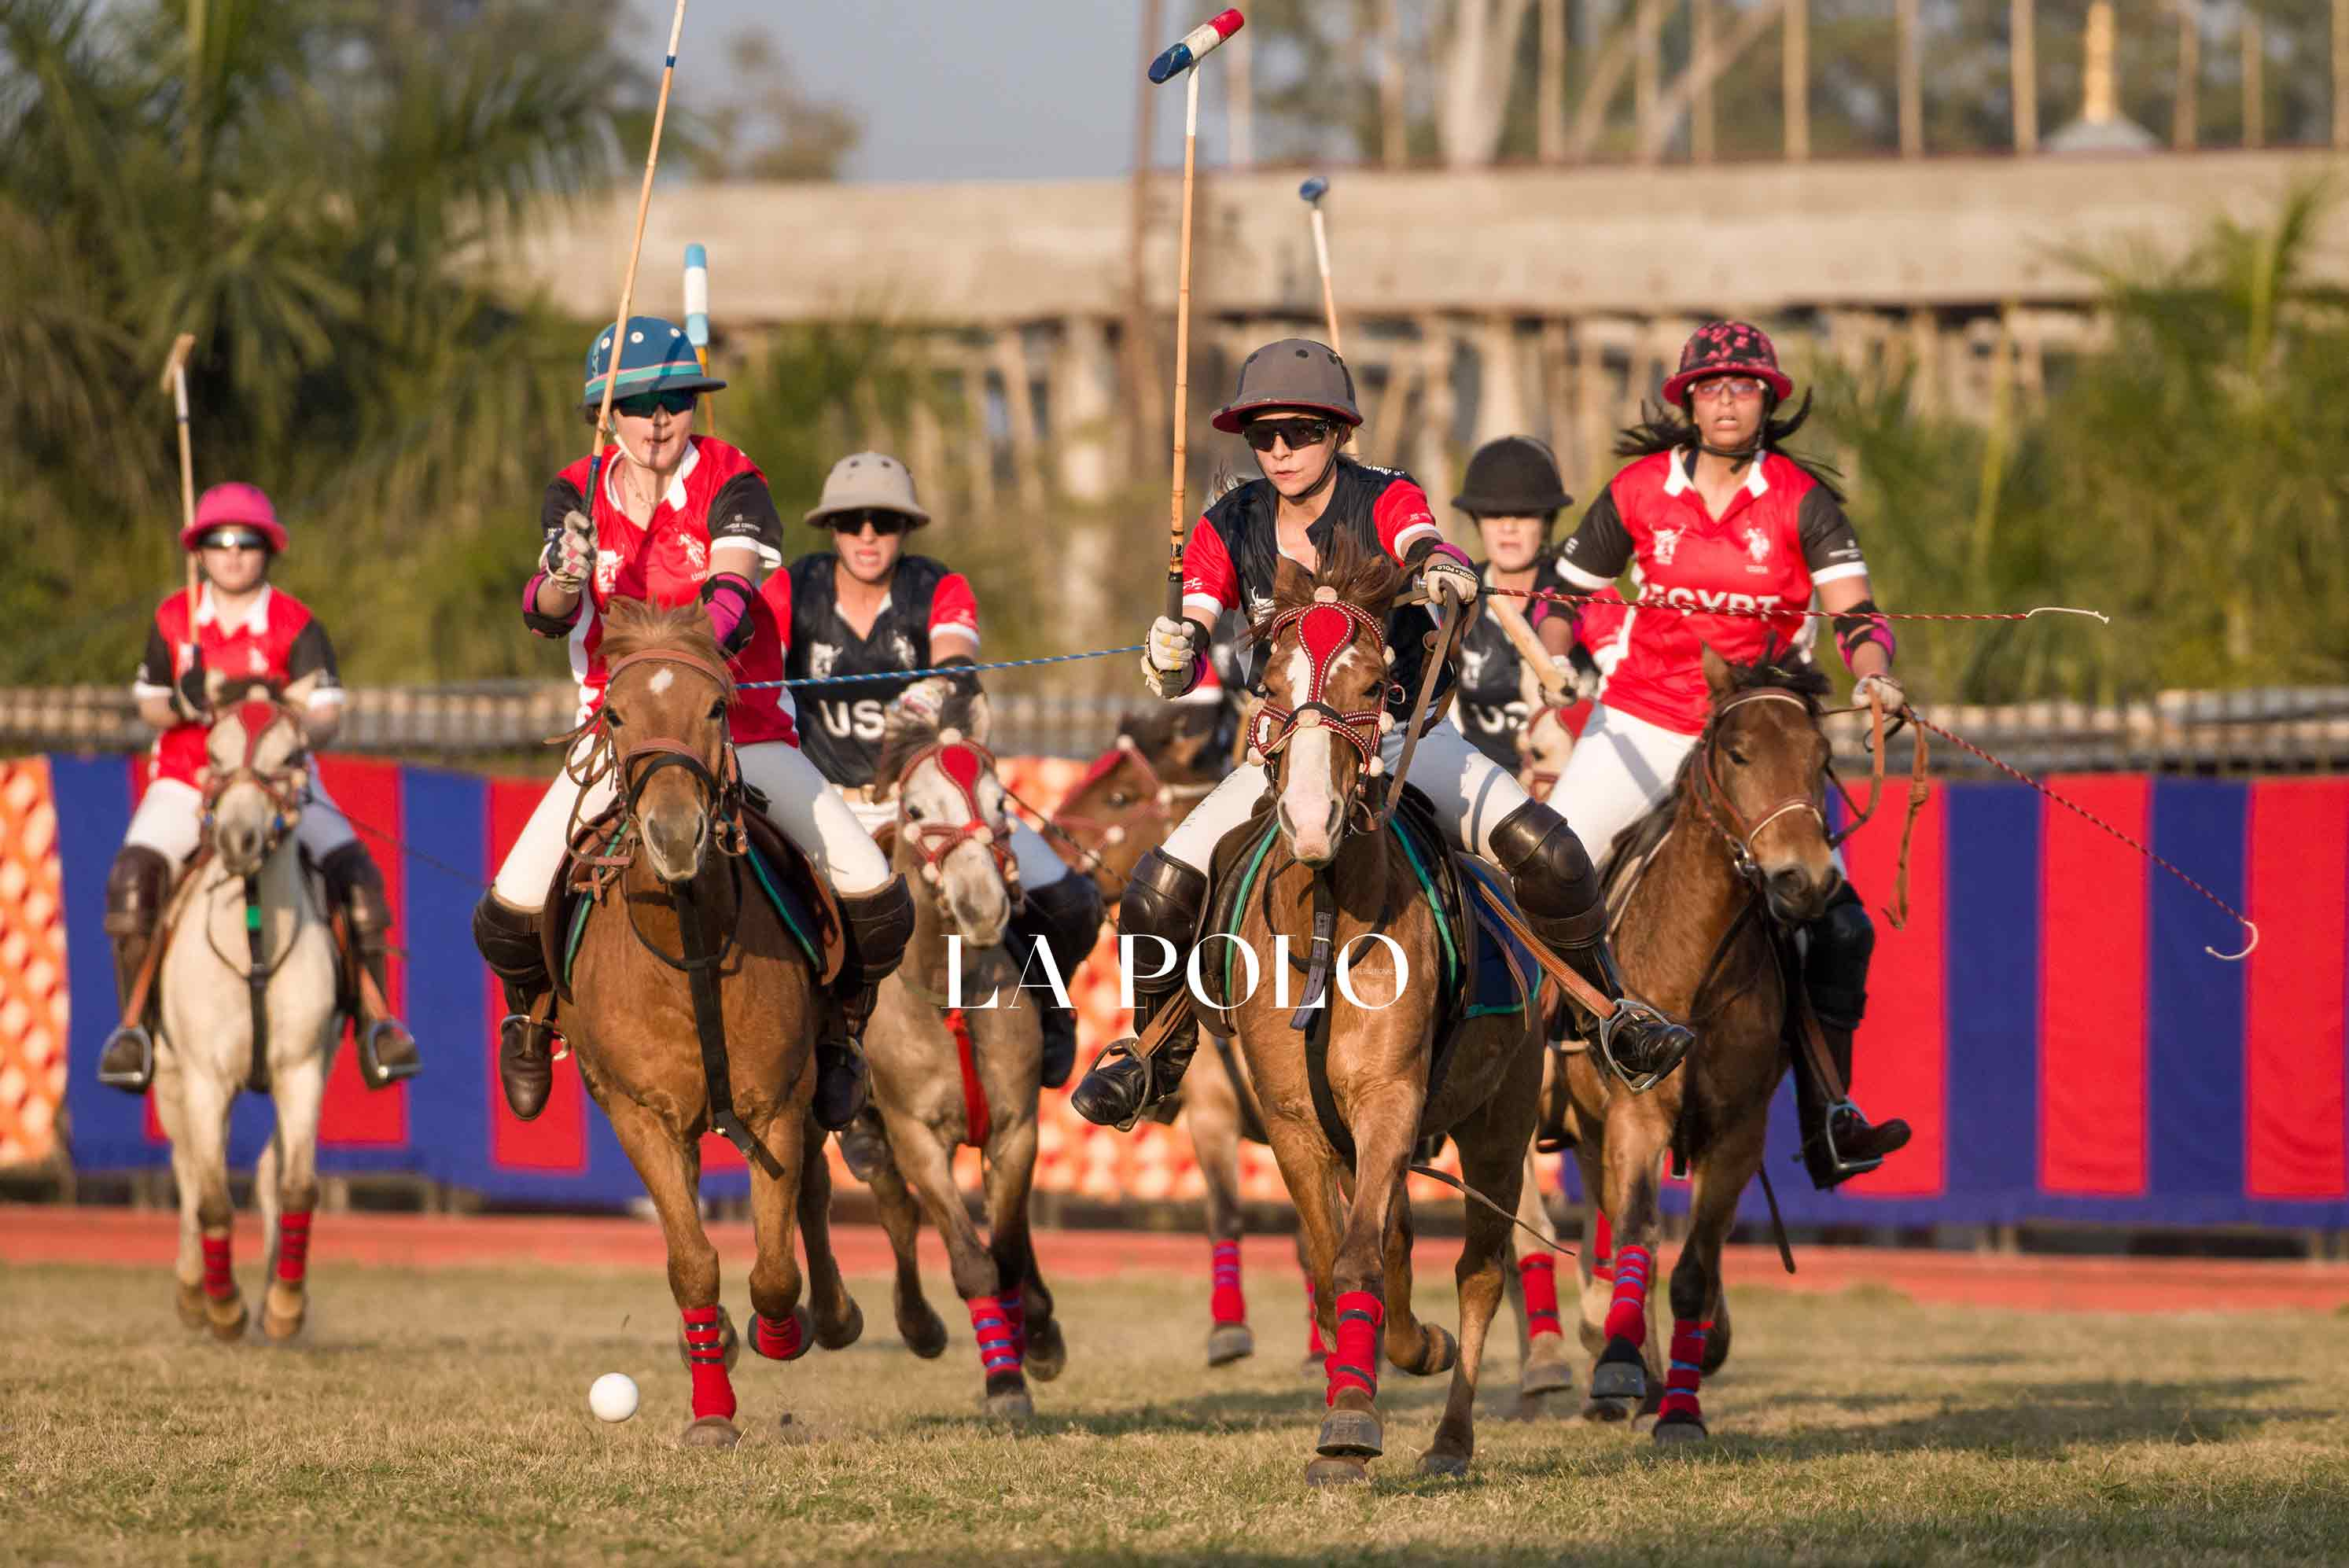 female-polo-players-in-manipur-lapolo